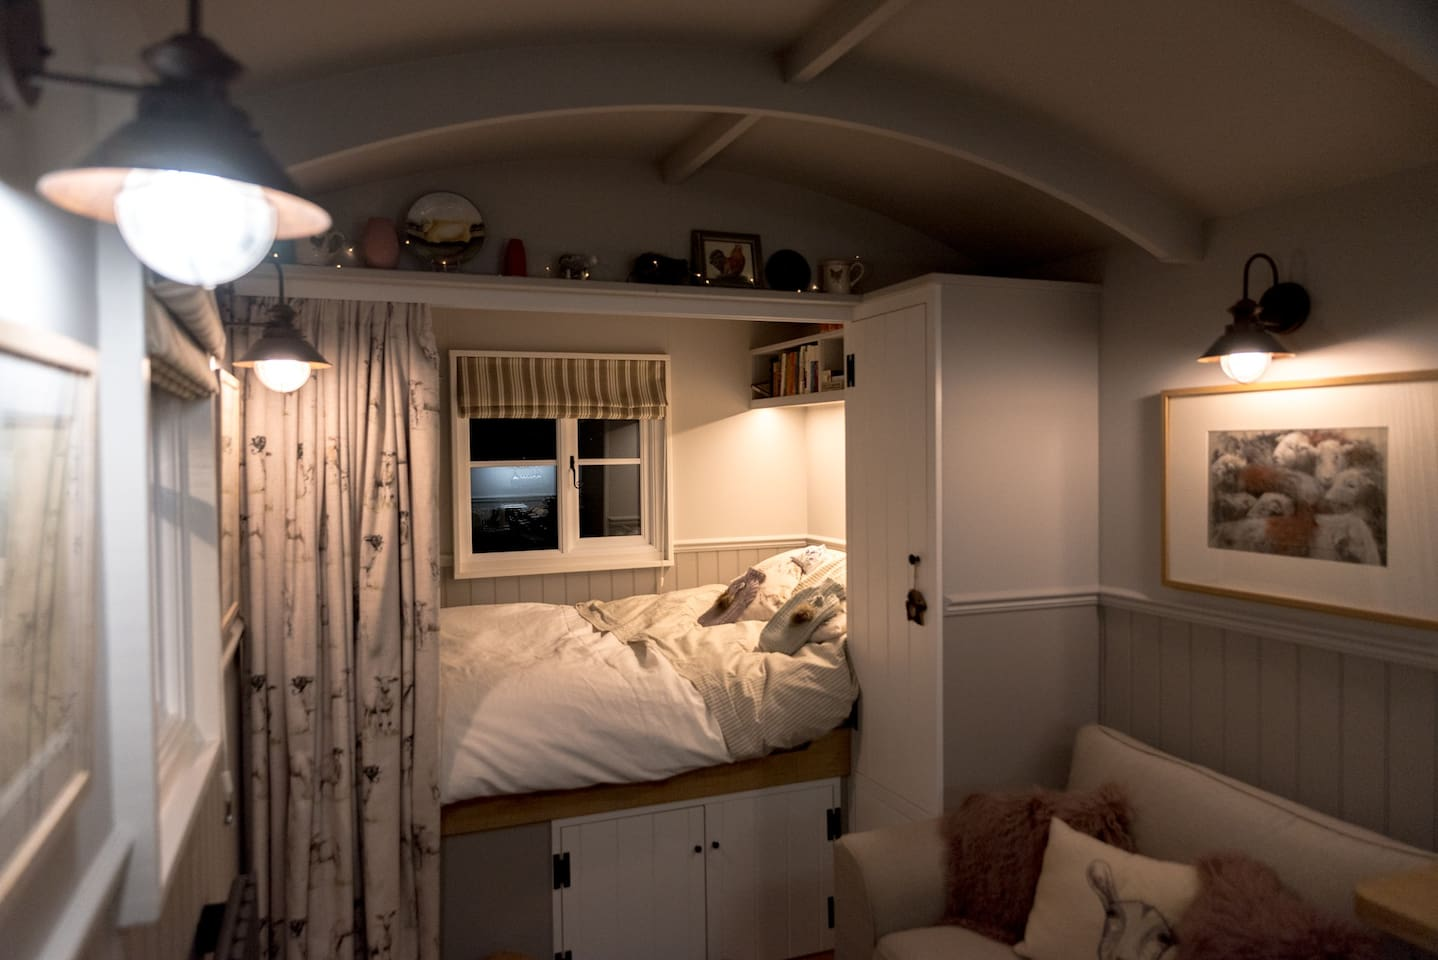 The snug and cosy bed chamber